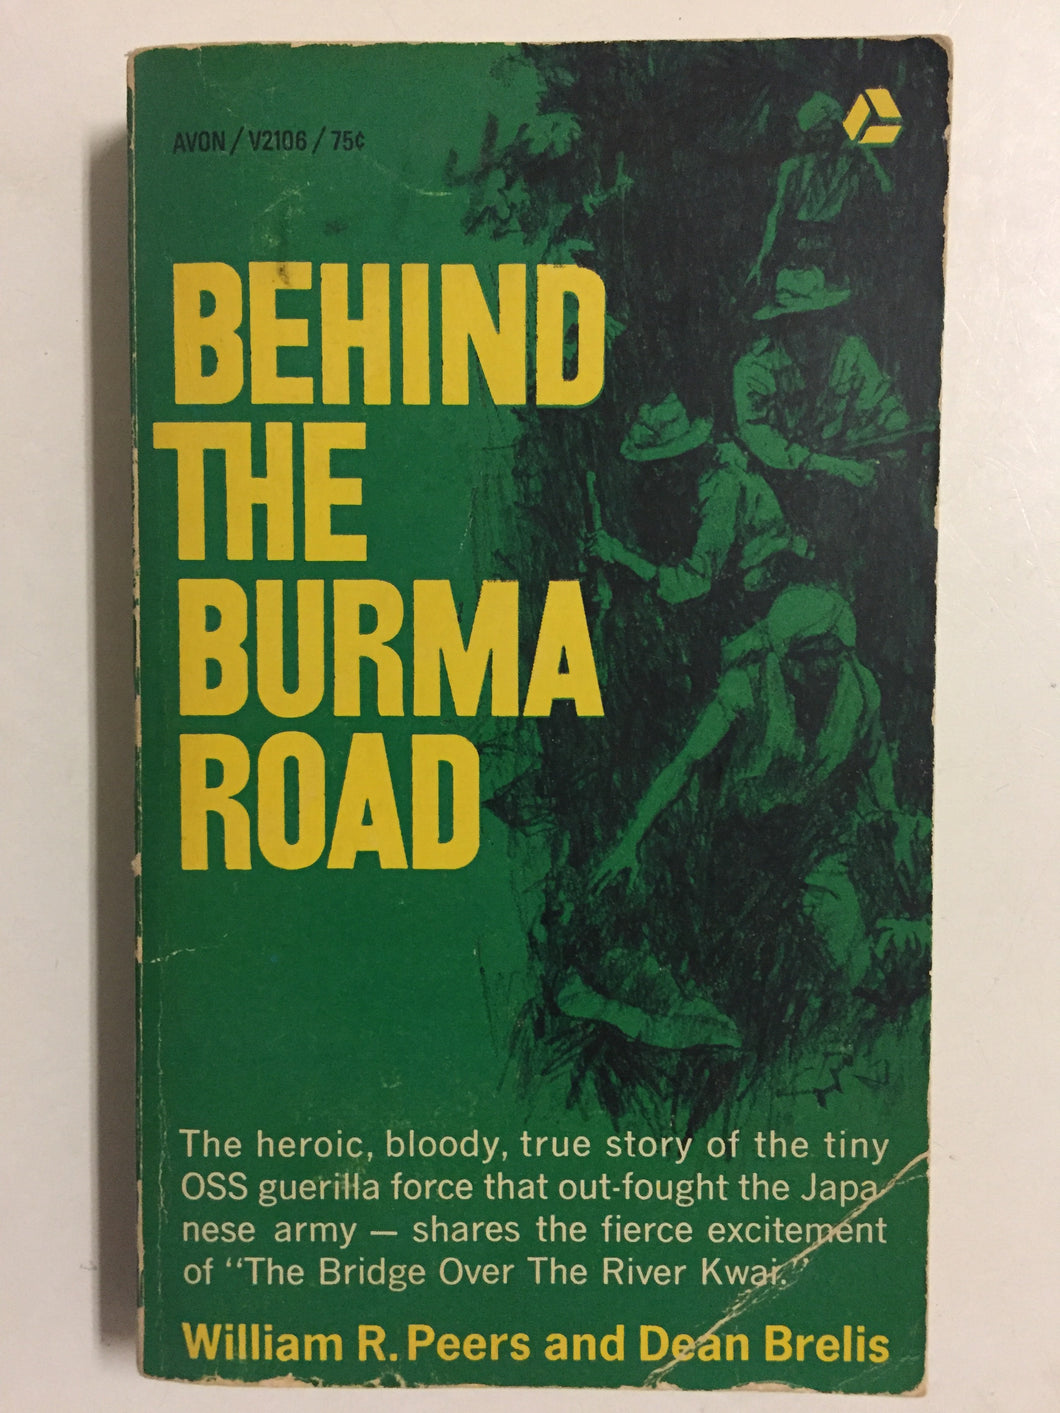 Behind the Burma Road - Slickcatbooks